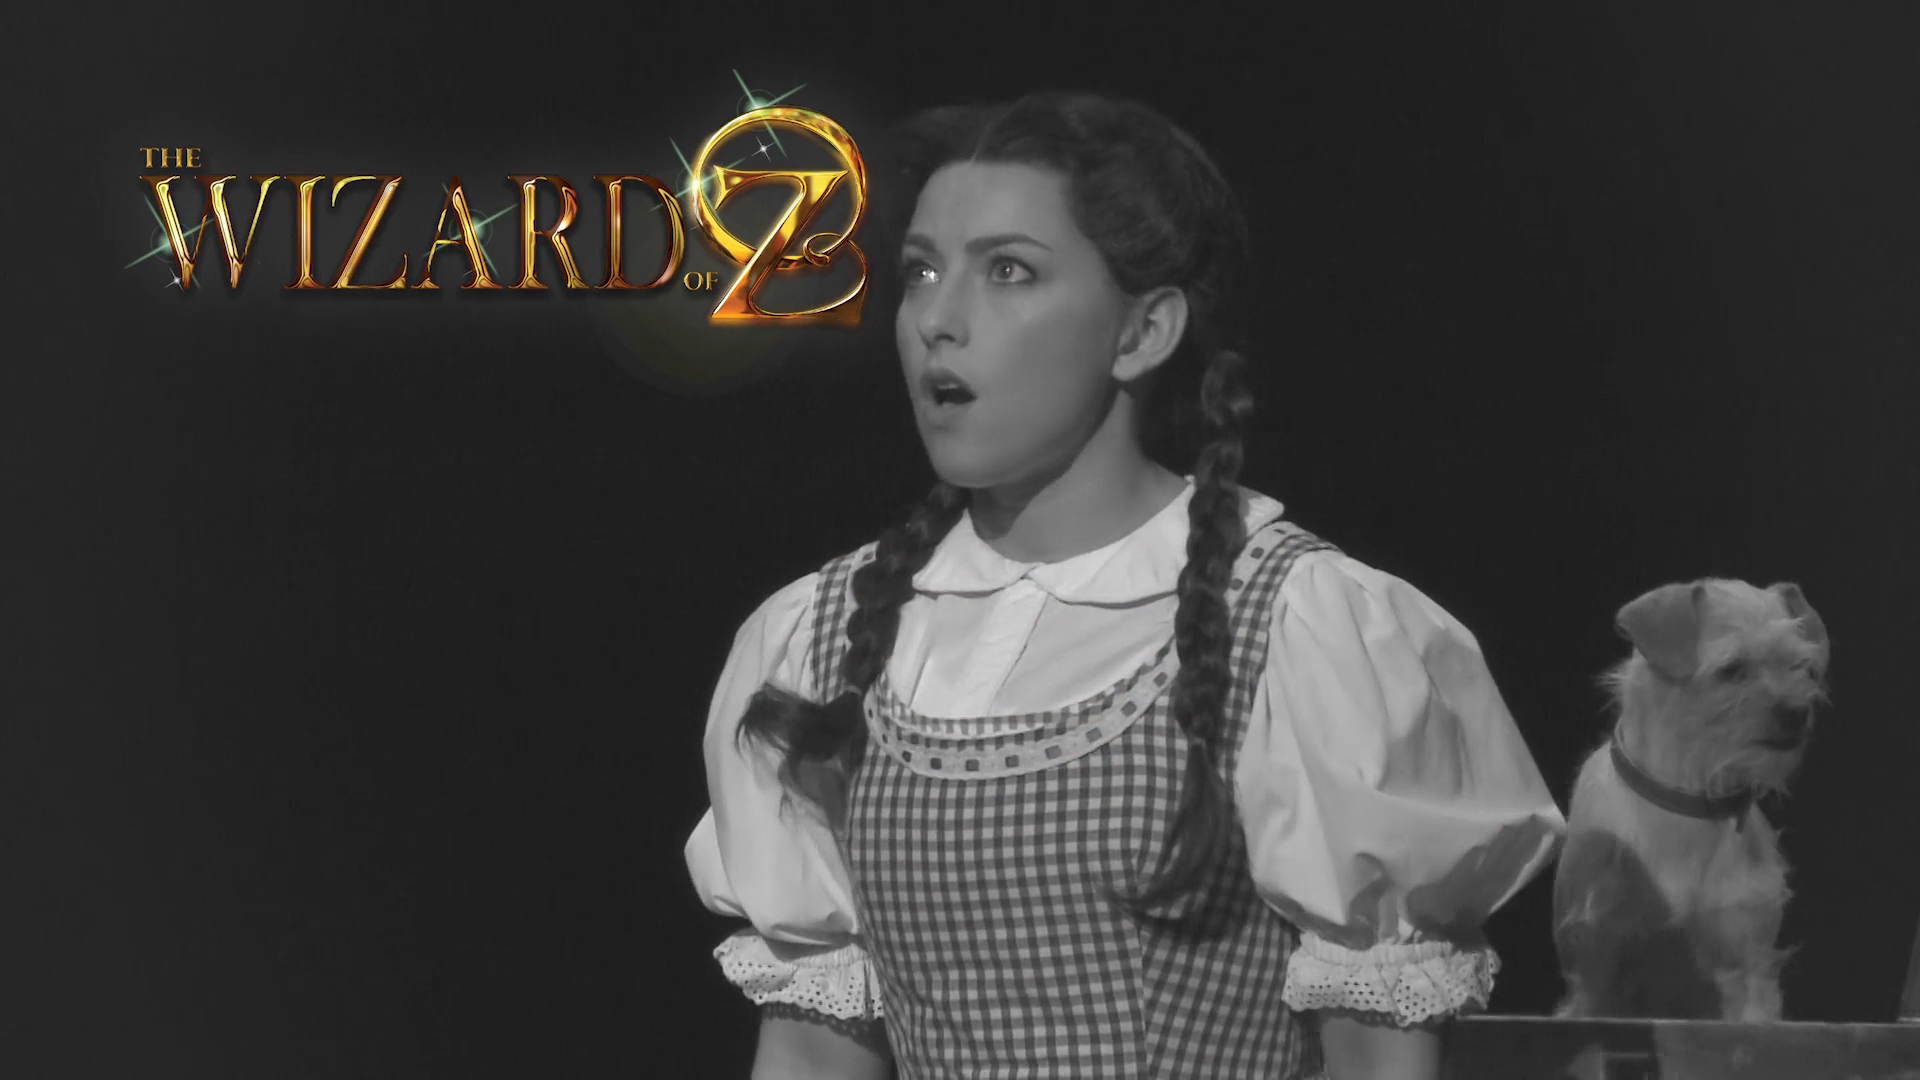 Wizard of Oz promo